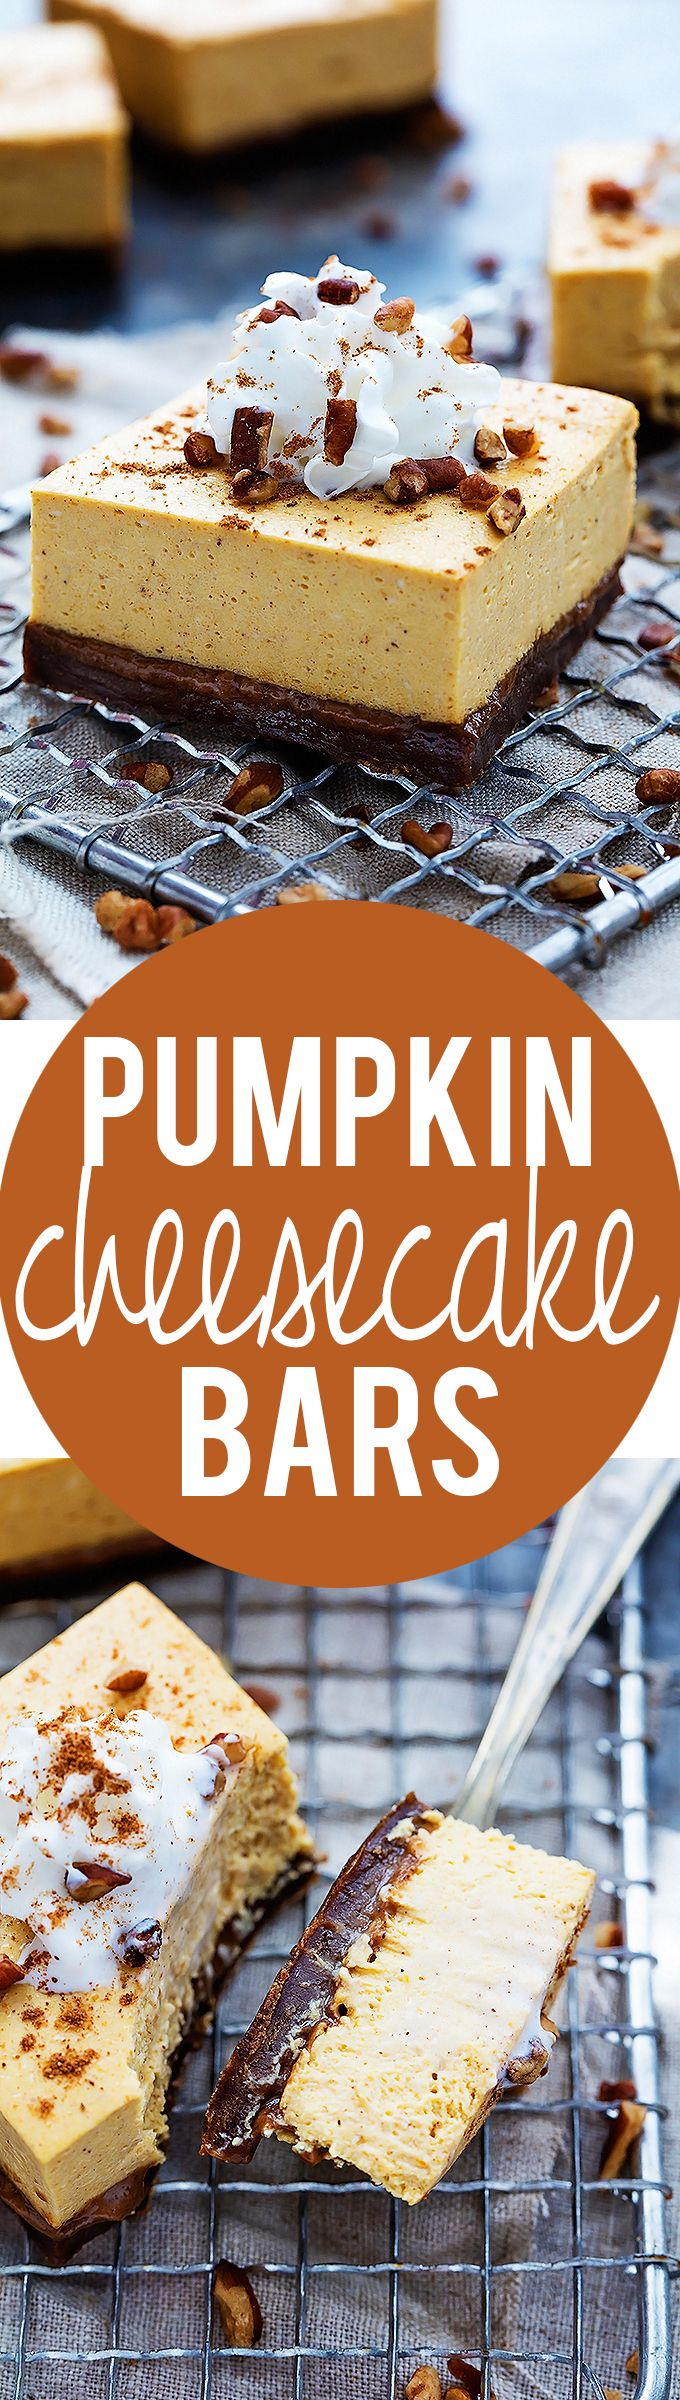 Pumpkin Cheesecake Bars with Gingersnap Crust | Creme de la Crumb